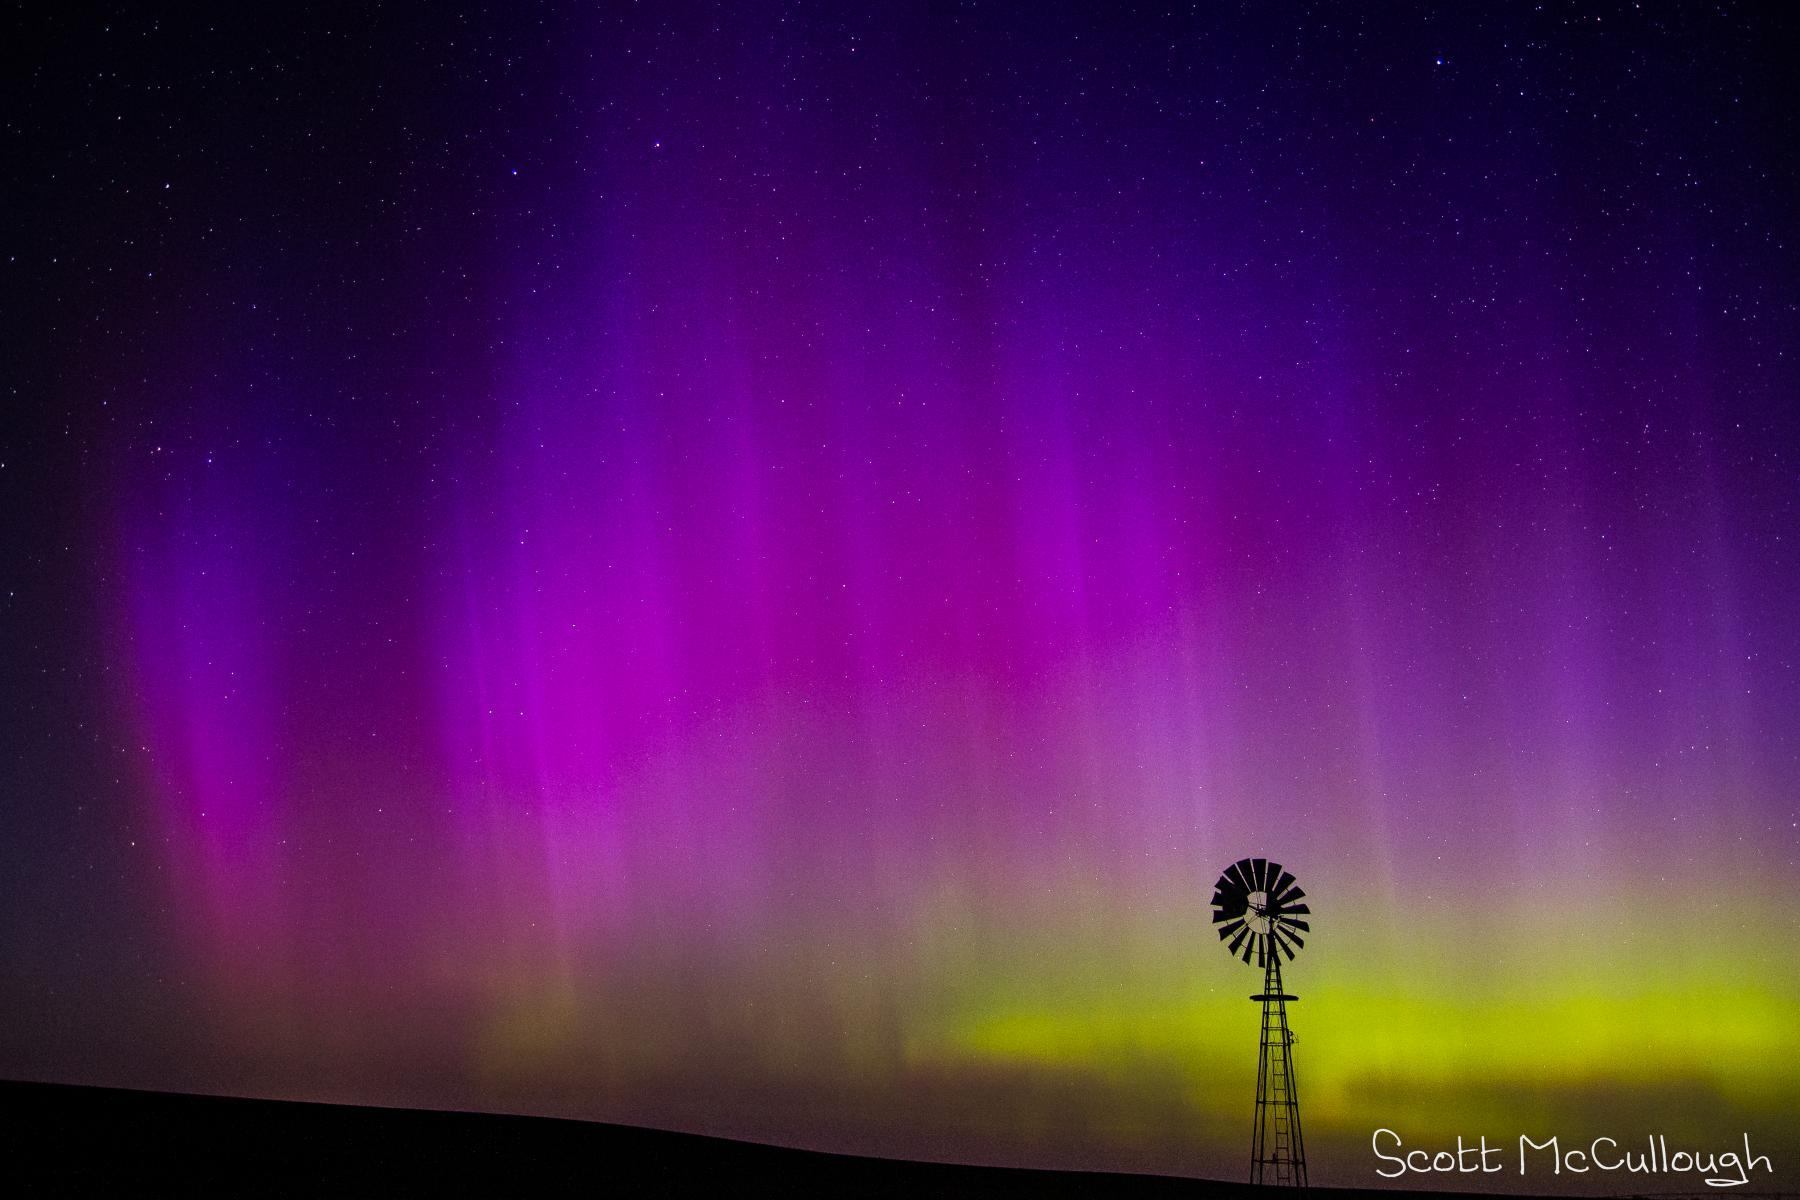 Aurora Borealis with a windmill in the foreground